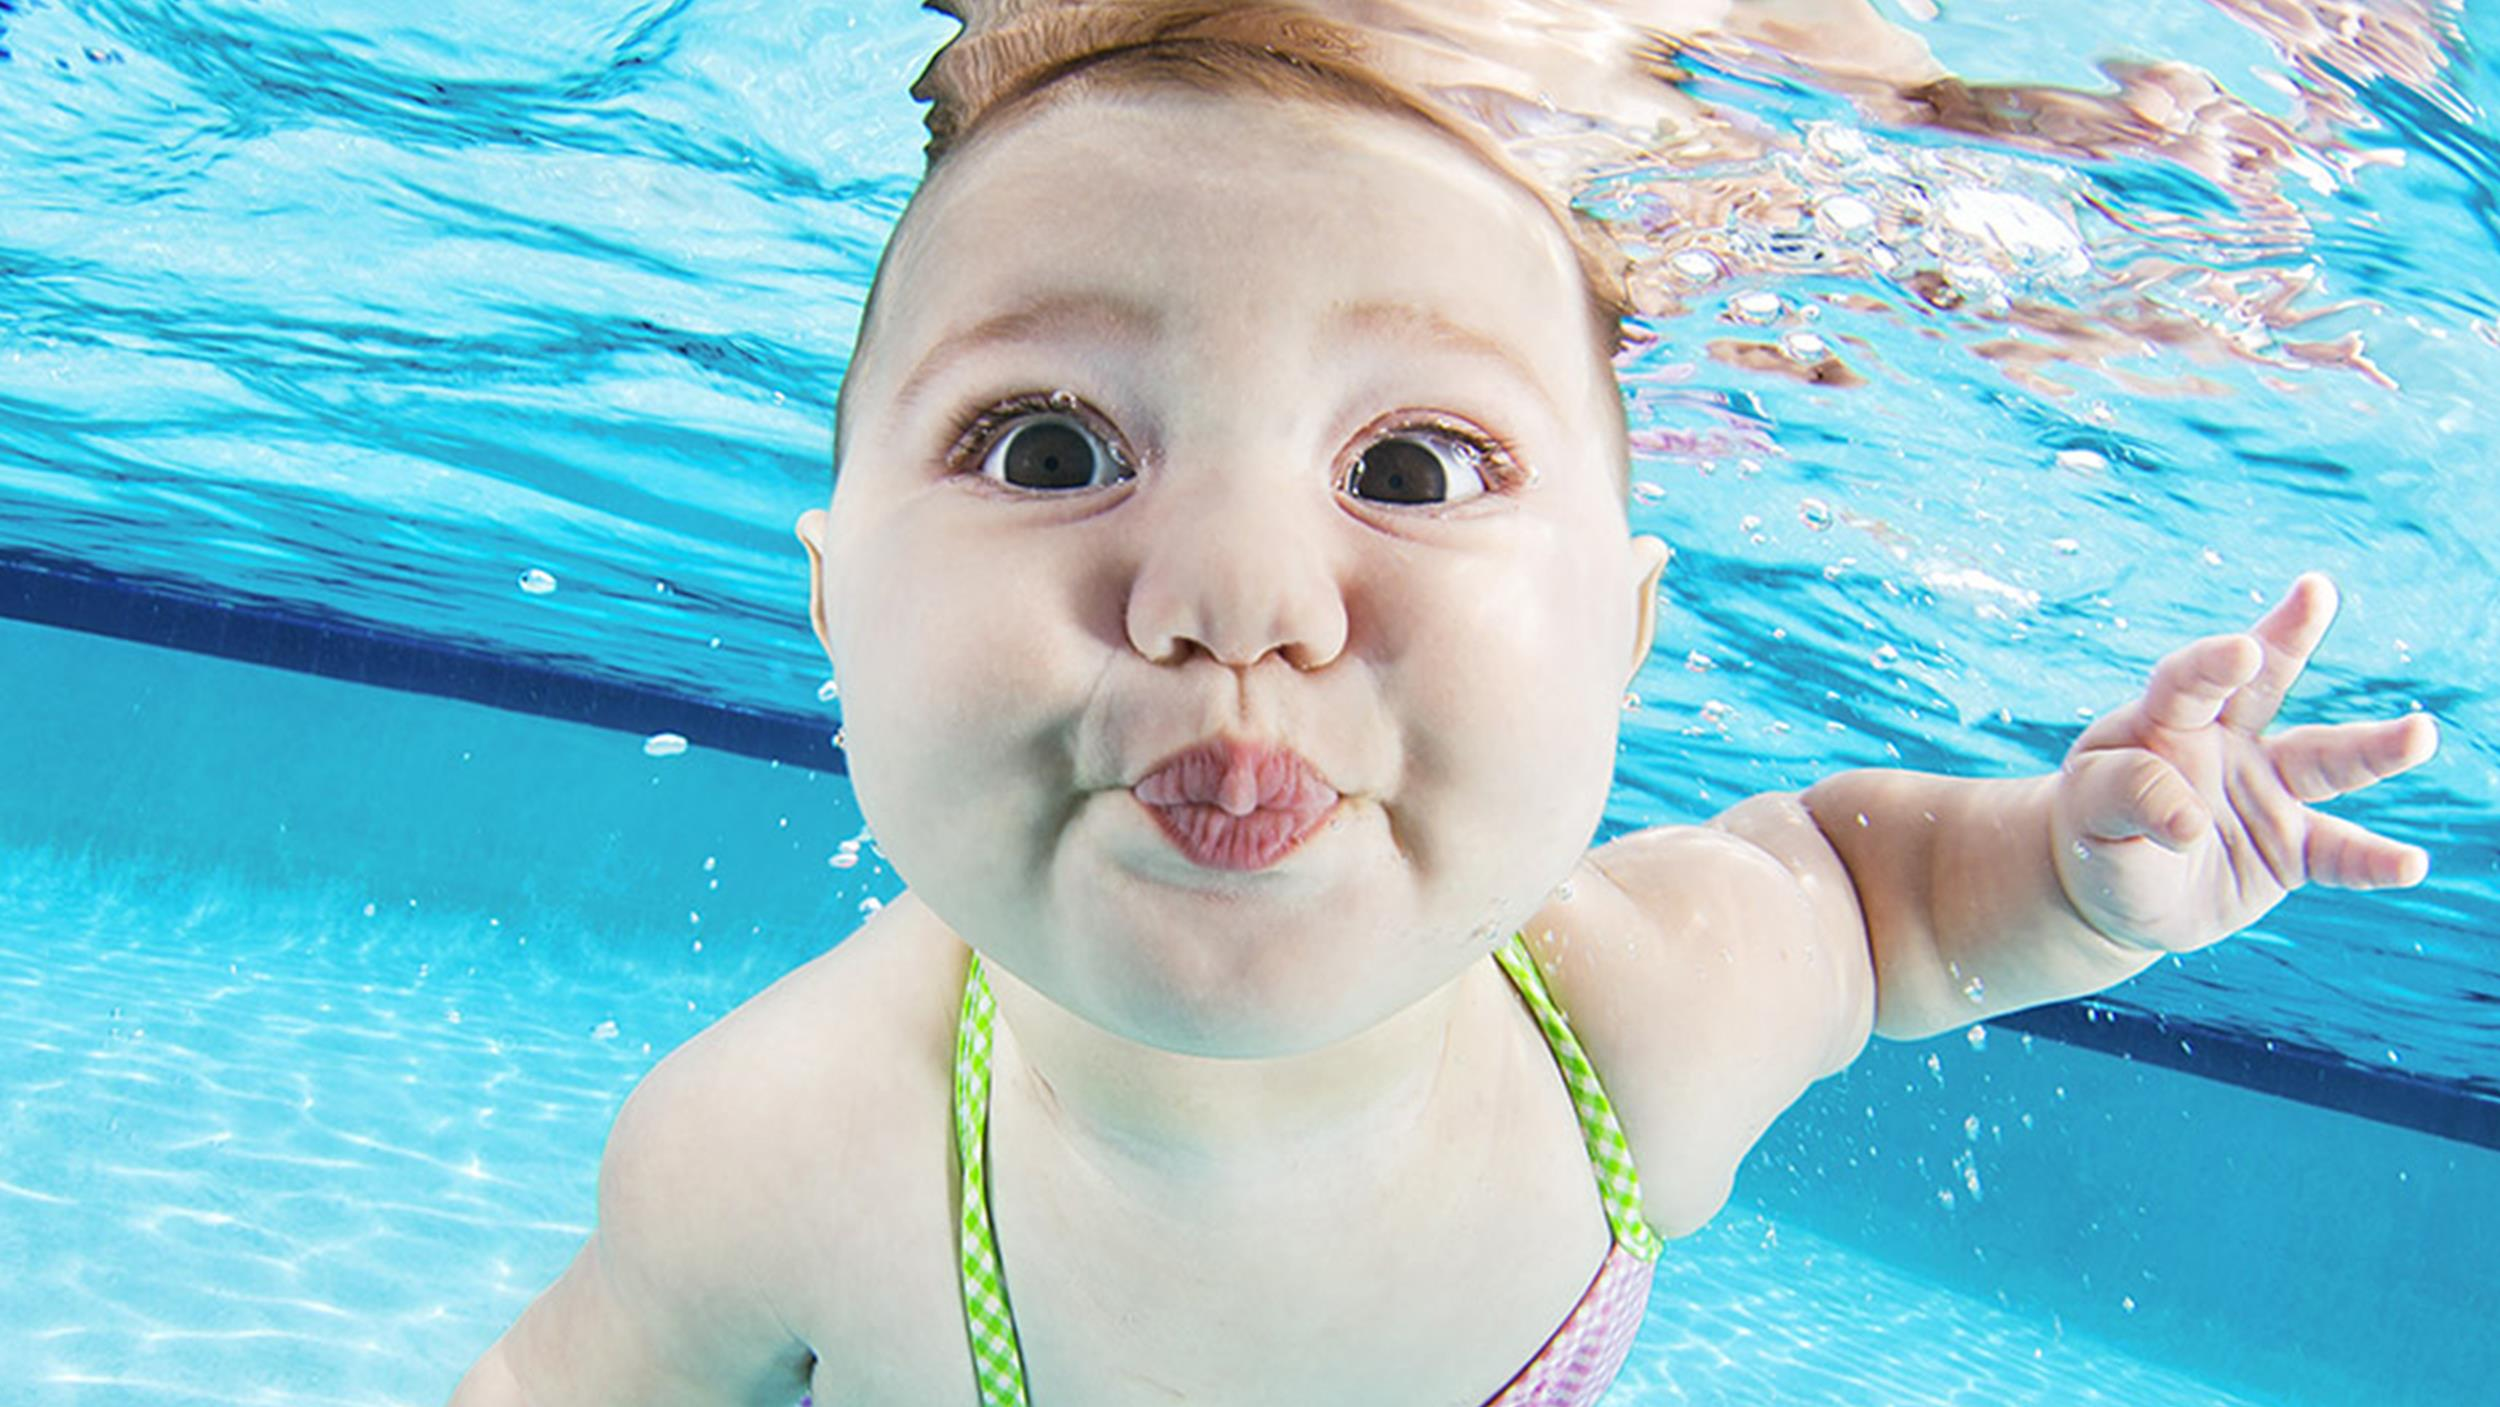 Cute Baby Pics Wallpapers 64 Images: 'Underwater Babies': Photographer Captures Toddlers In